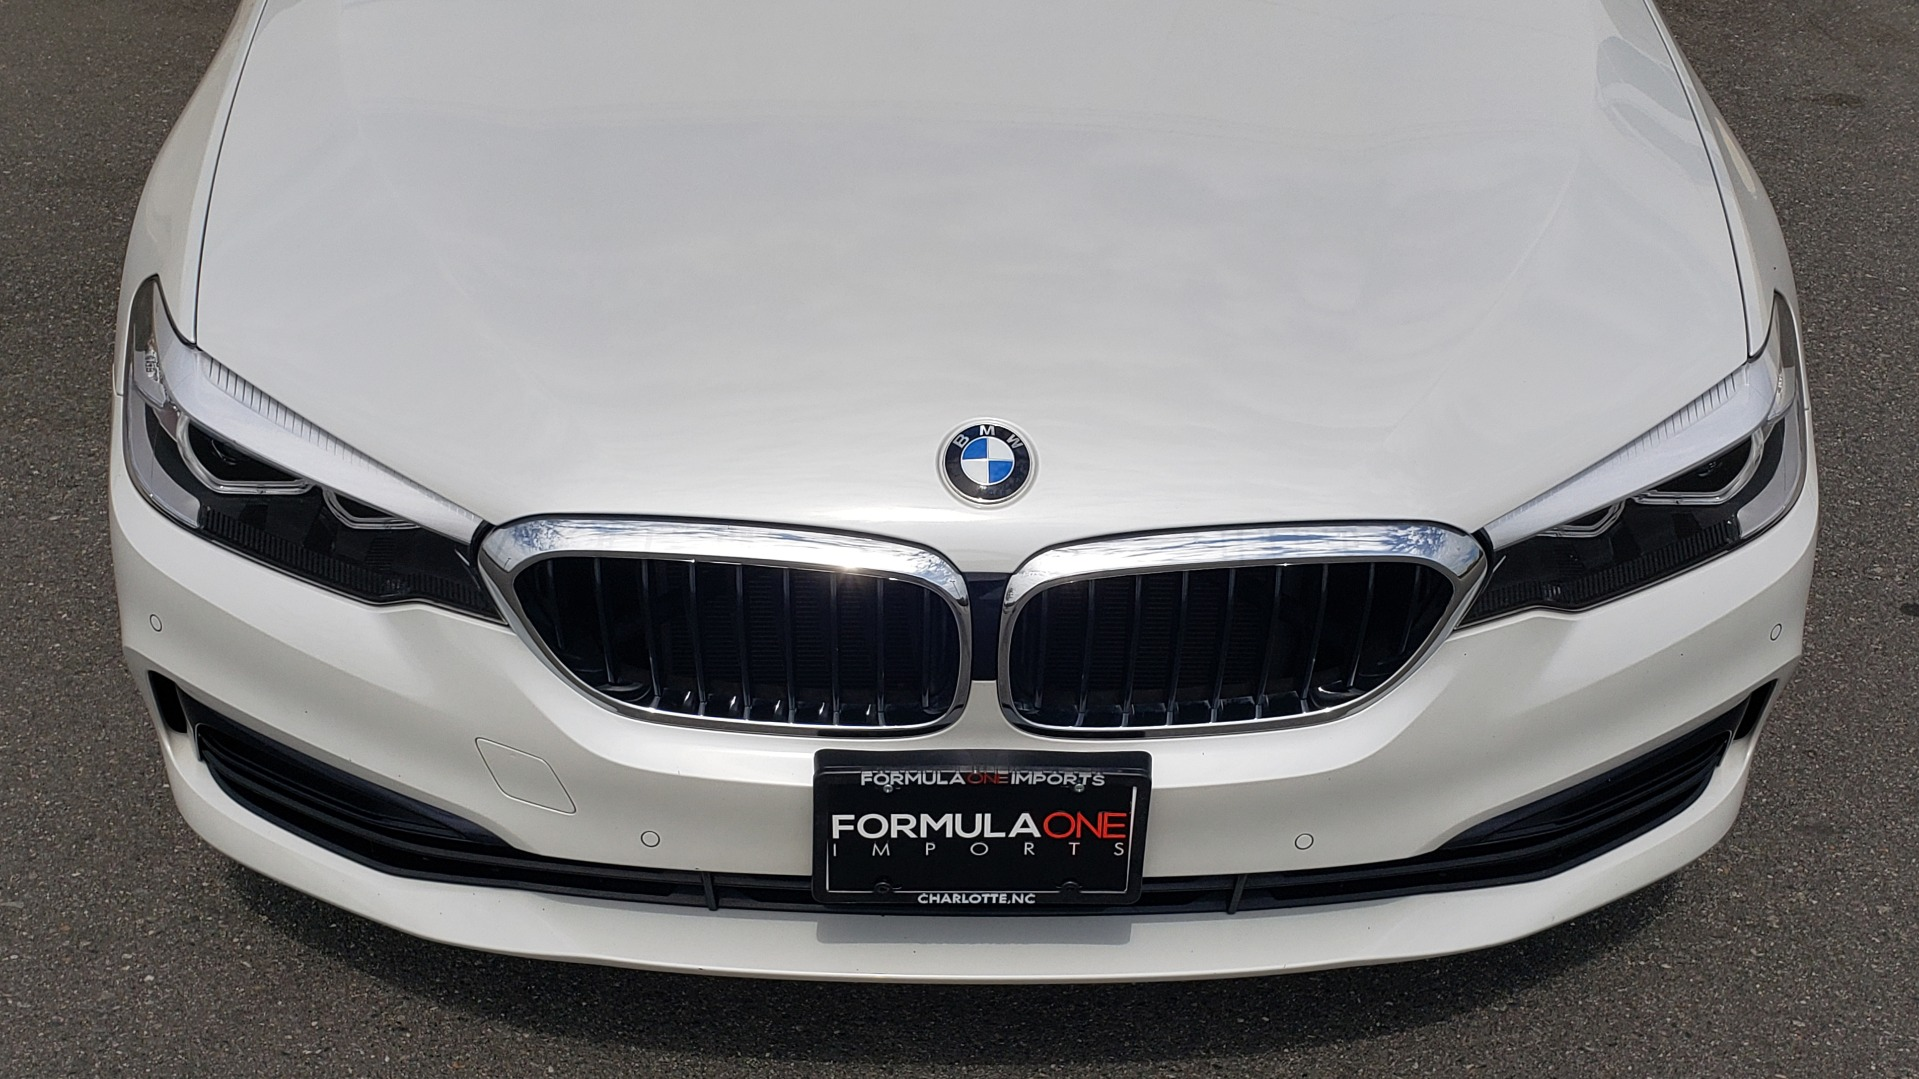 Used 2018 BMW 5 SERIES 530I XDRIVE PREMIUM / NAV / DRVR ASST / PARK ASST / H/K SND for sale $32,795 at Formula Imports in Charlotte NC 28227 23